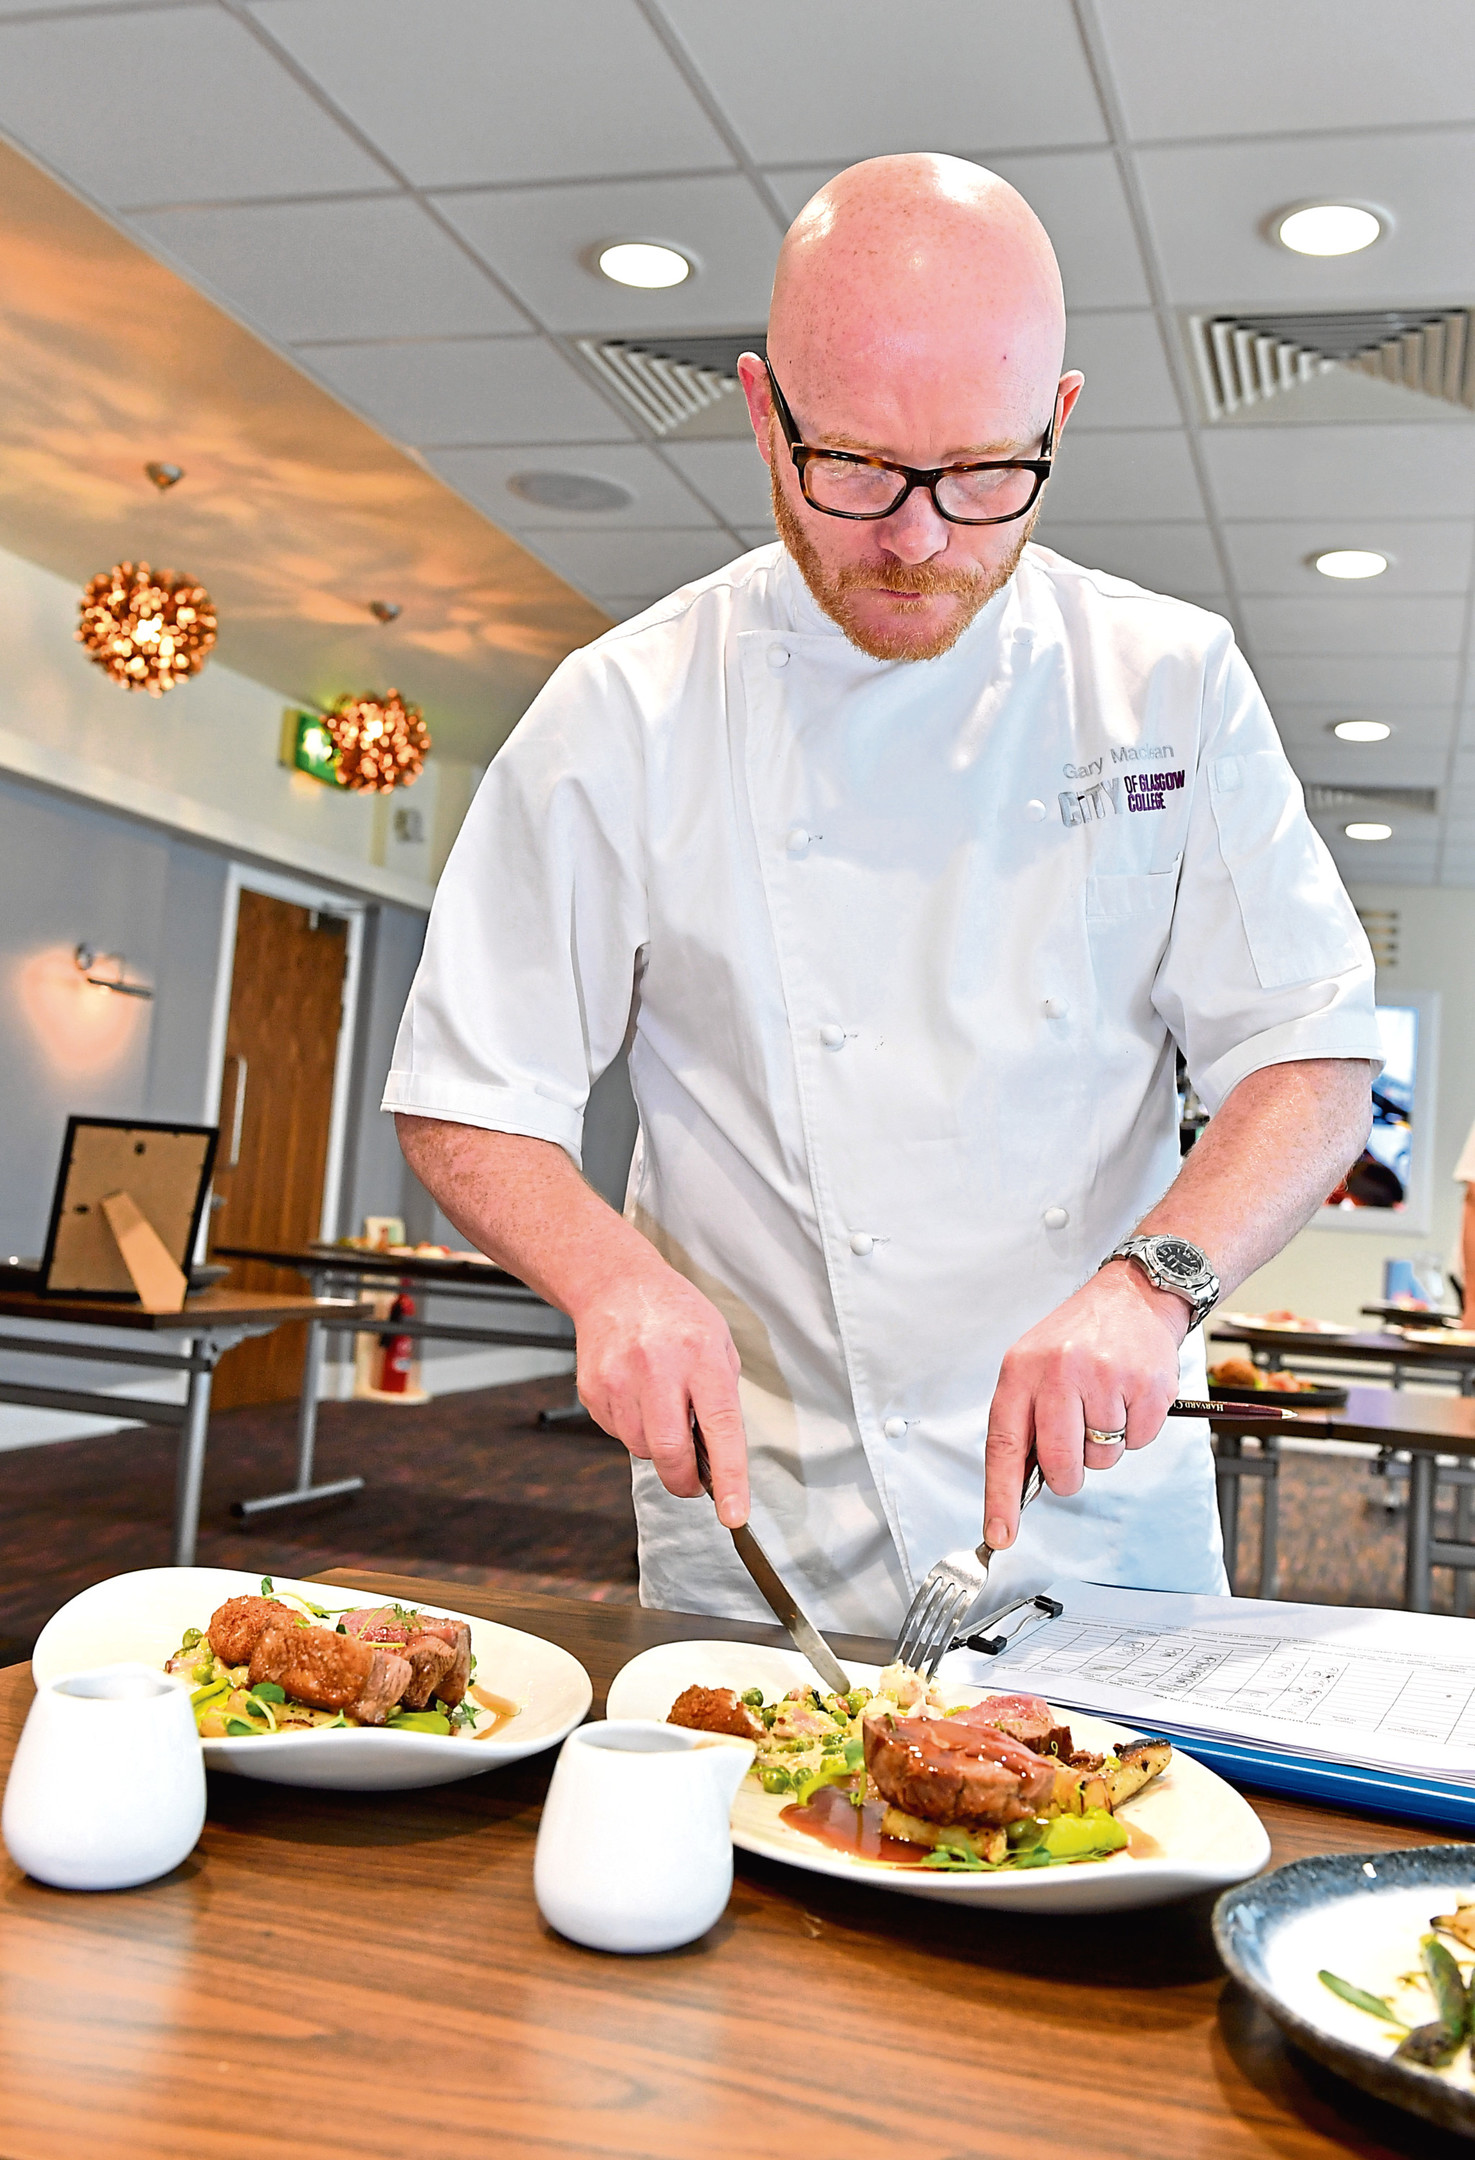 One of the judges, Gary Maclean, at work.